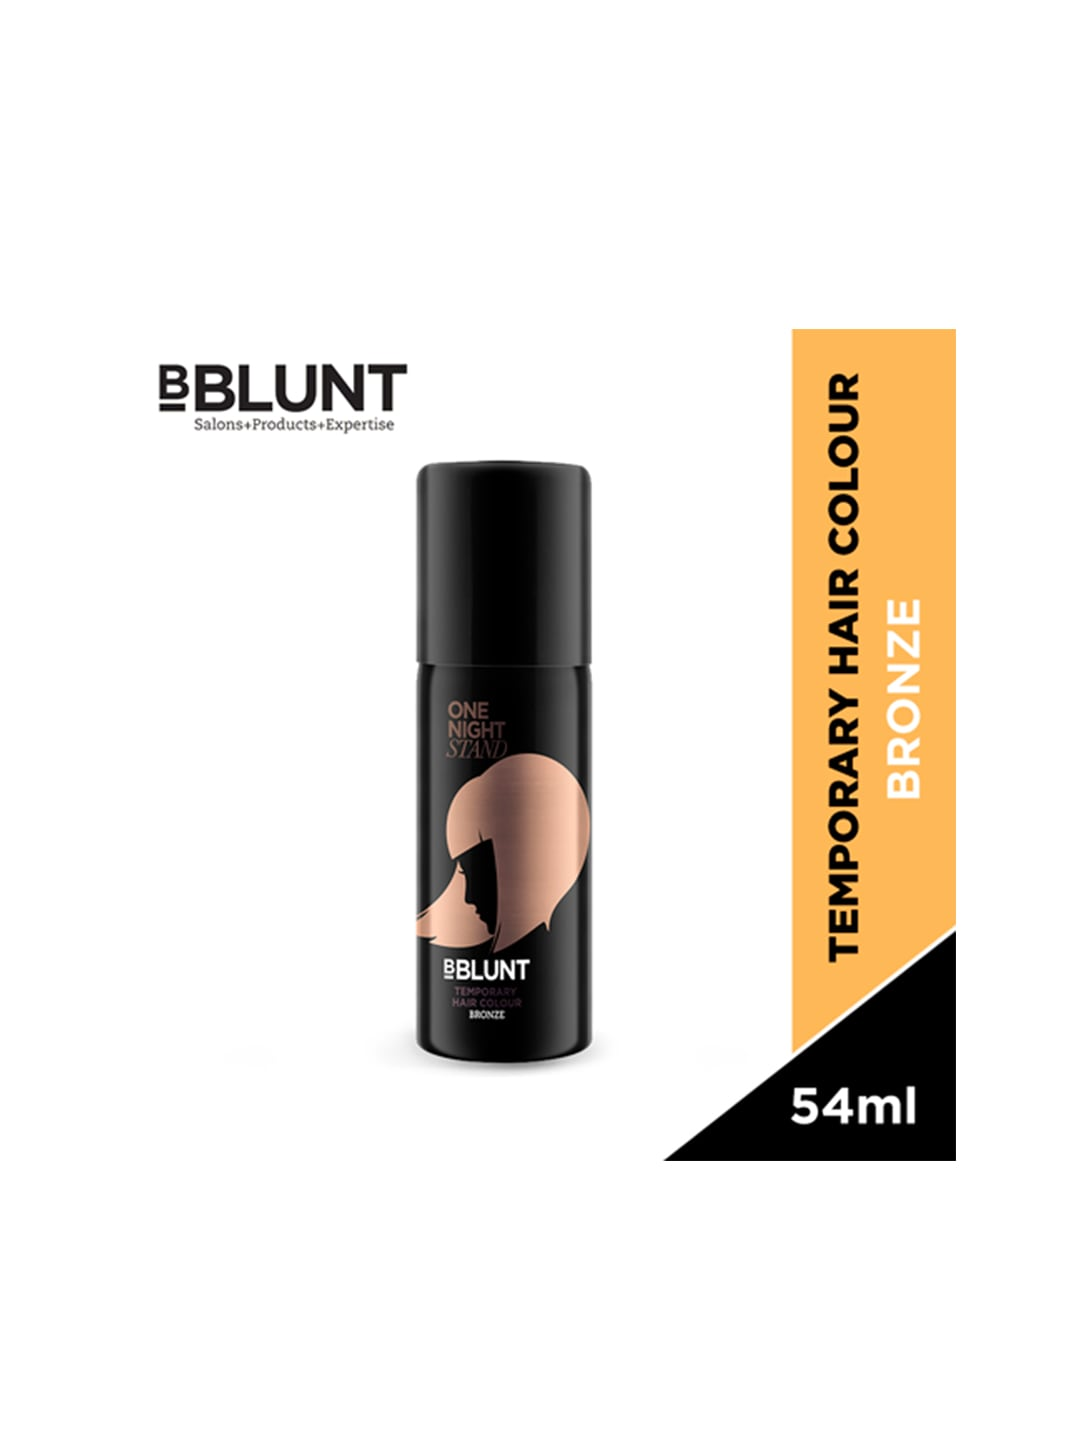 BBLUNT Unisex One Night Stand Bronze-Toned Temporary Hair Colour image